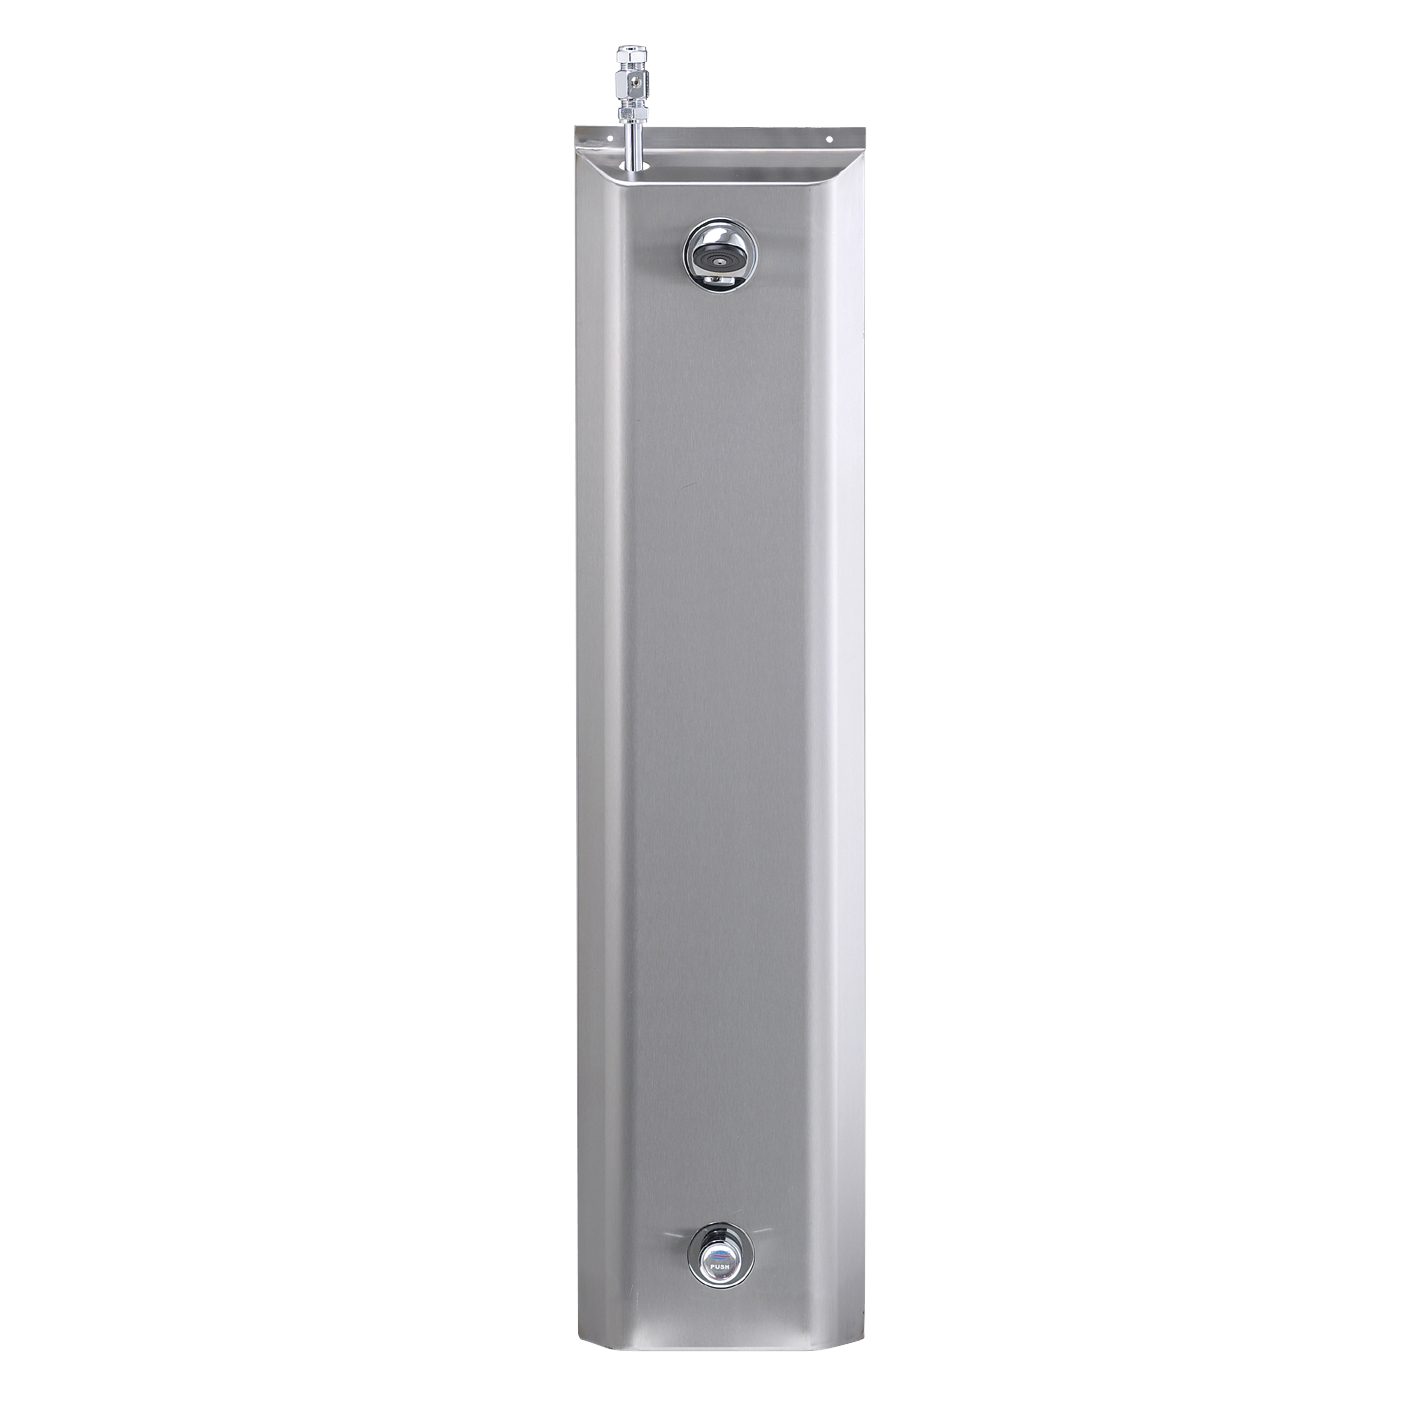 Commercial Water Controls: SHOWER PANELS FROM SIRRUS BY